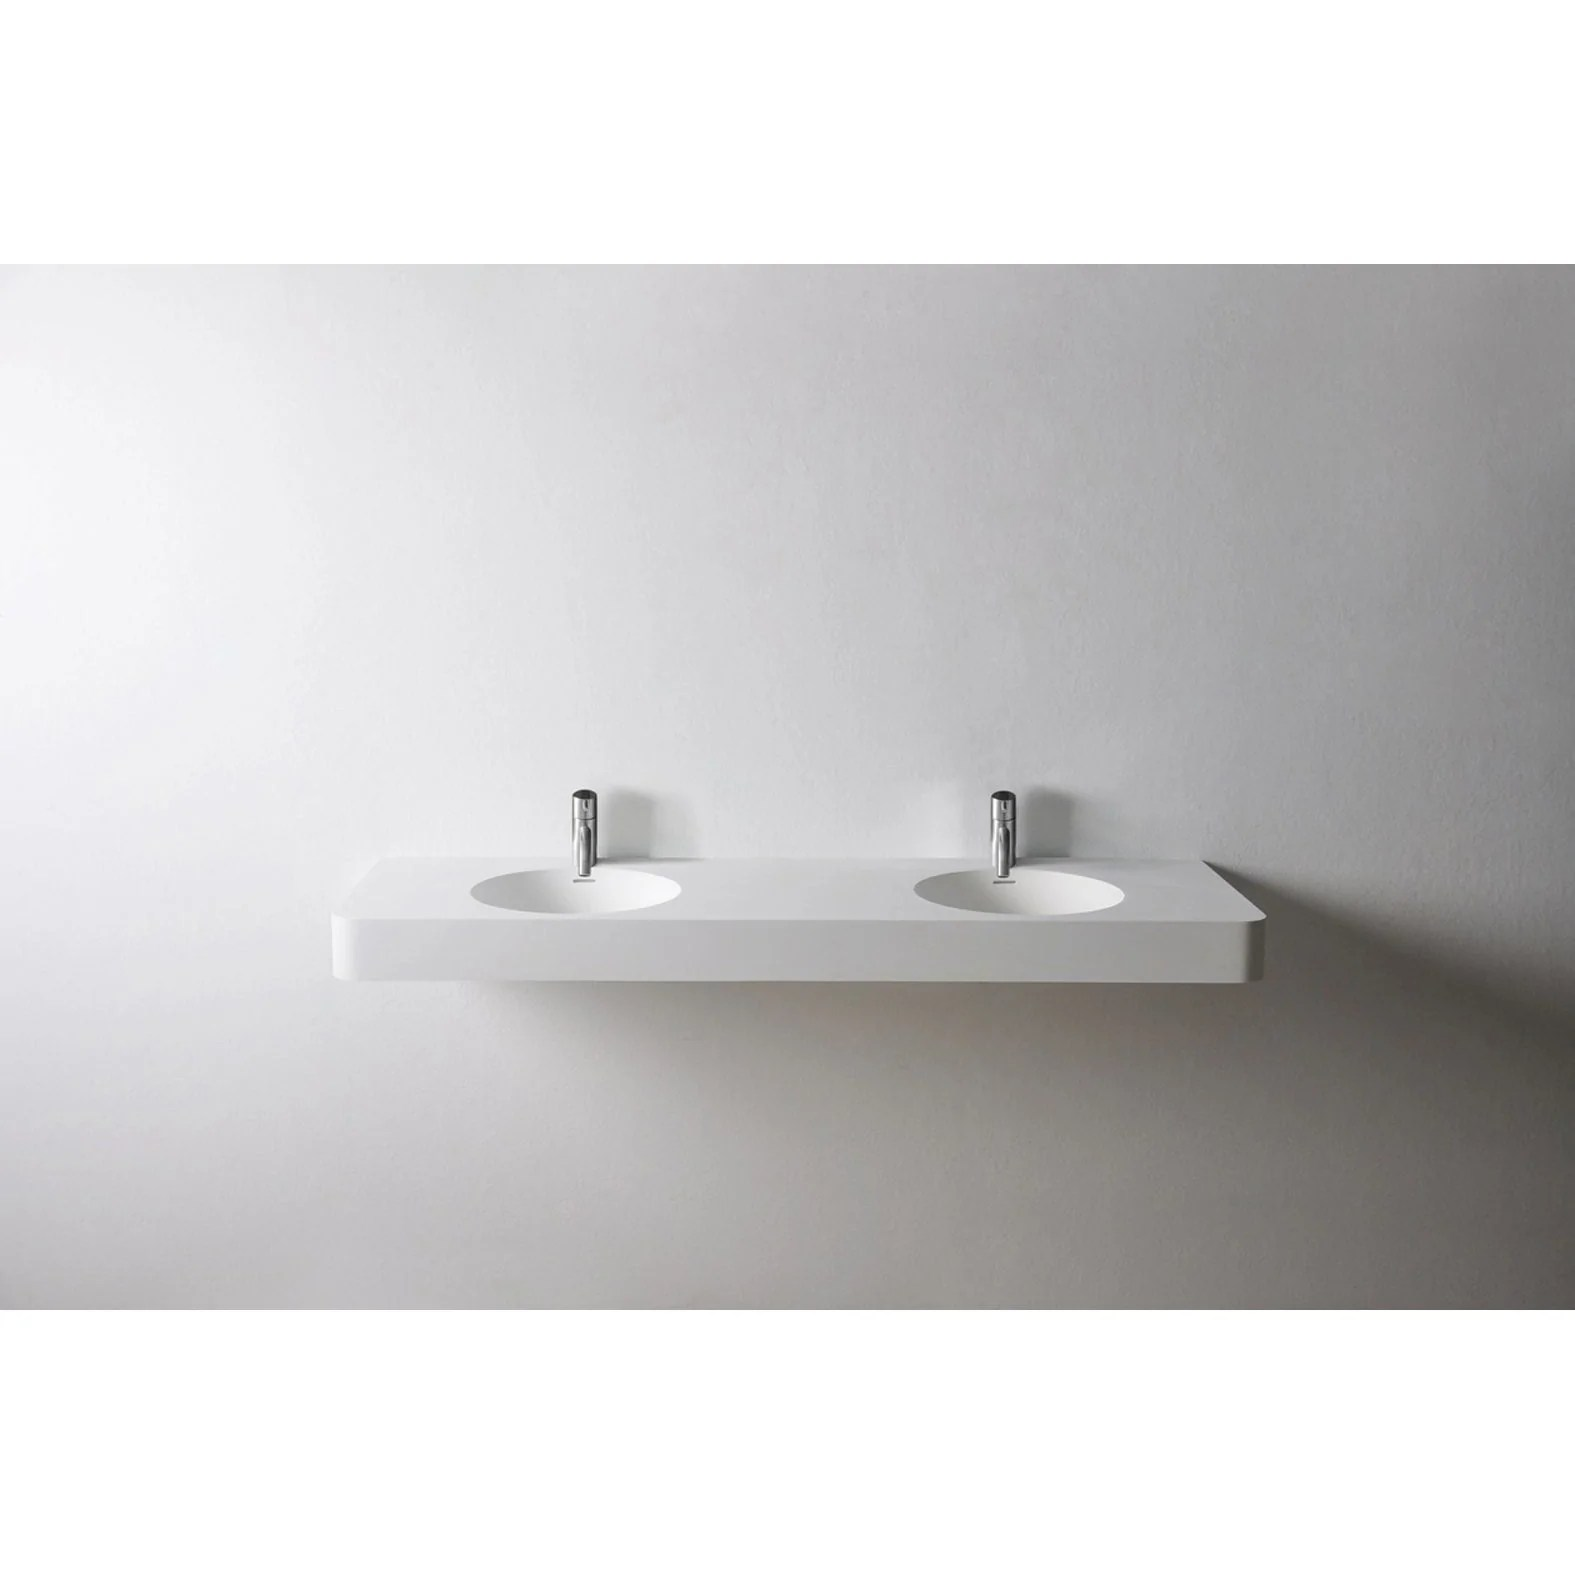 solidbrio 59 in wall mounted double sink bathroom vanity white solid surface